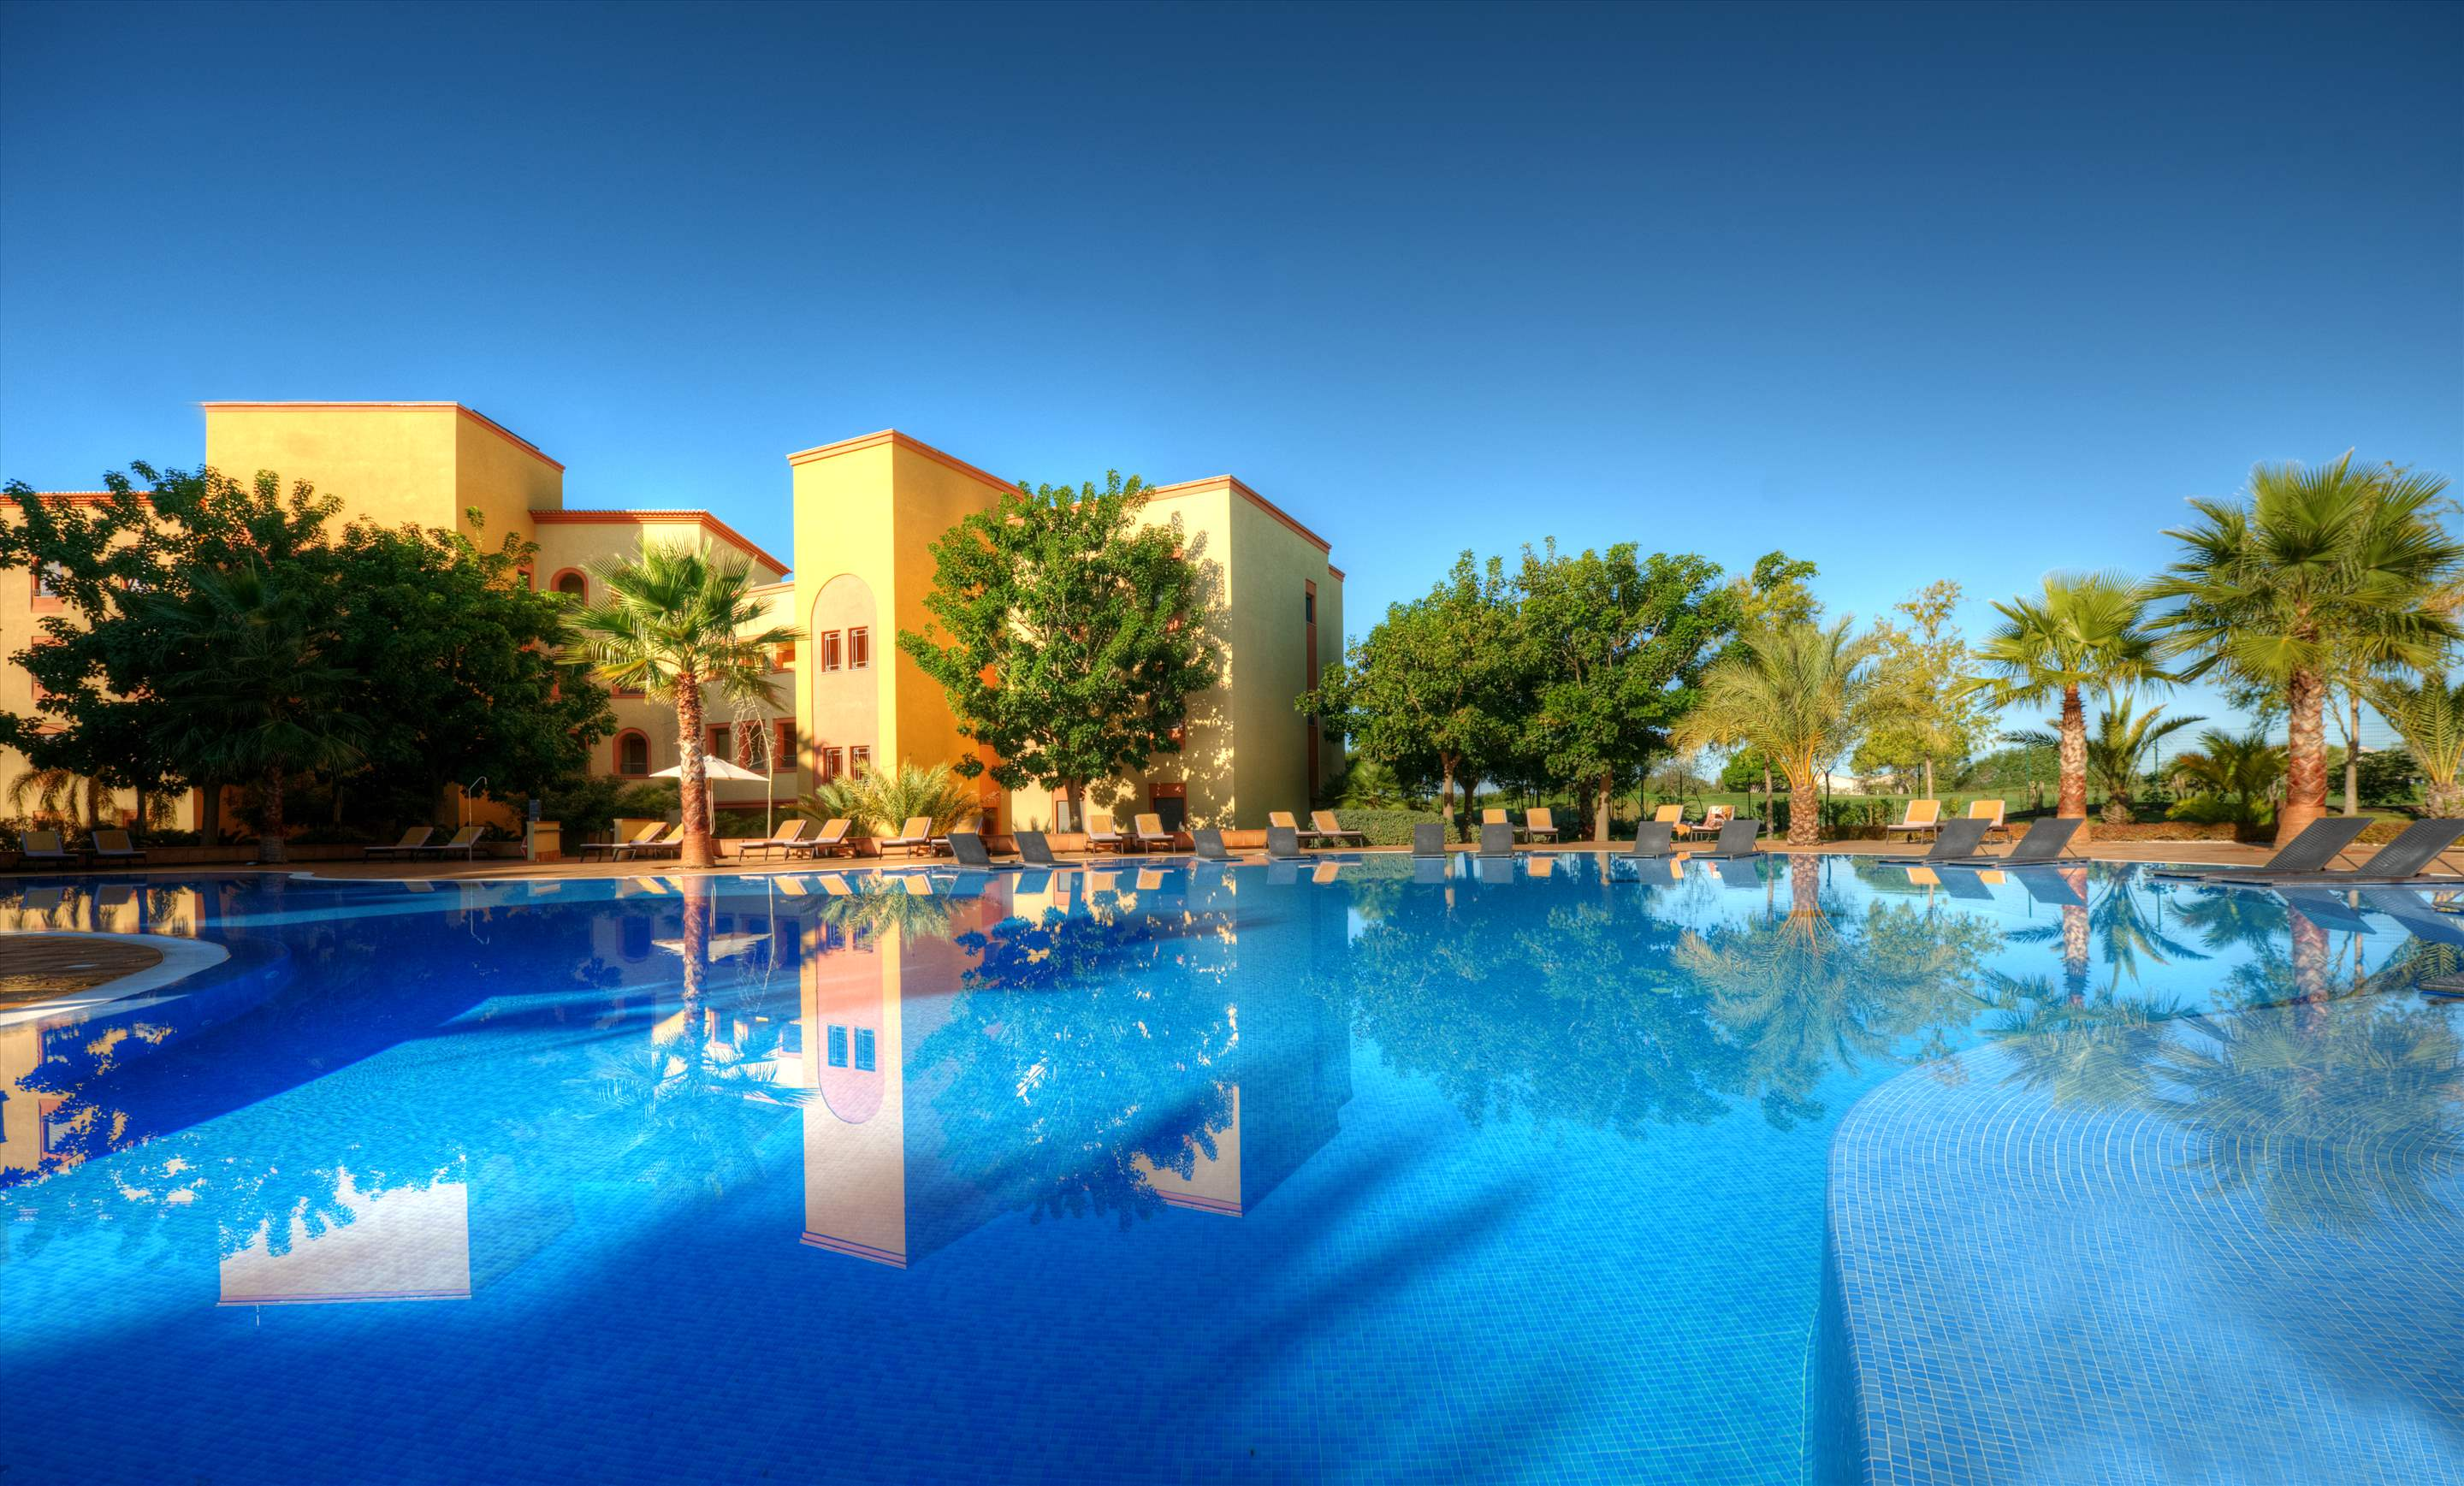 The Residences at Victoria by TIVOLI 3 Bed Apt , Deluxe, Golf or Pool View, 3 bedroom apartment in The Residences at Victoria by TIVOLI, Algarve Photo #2